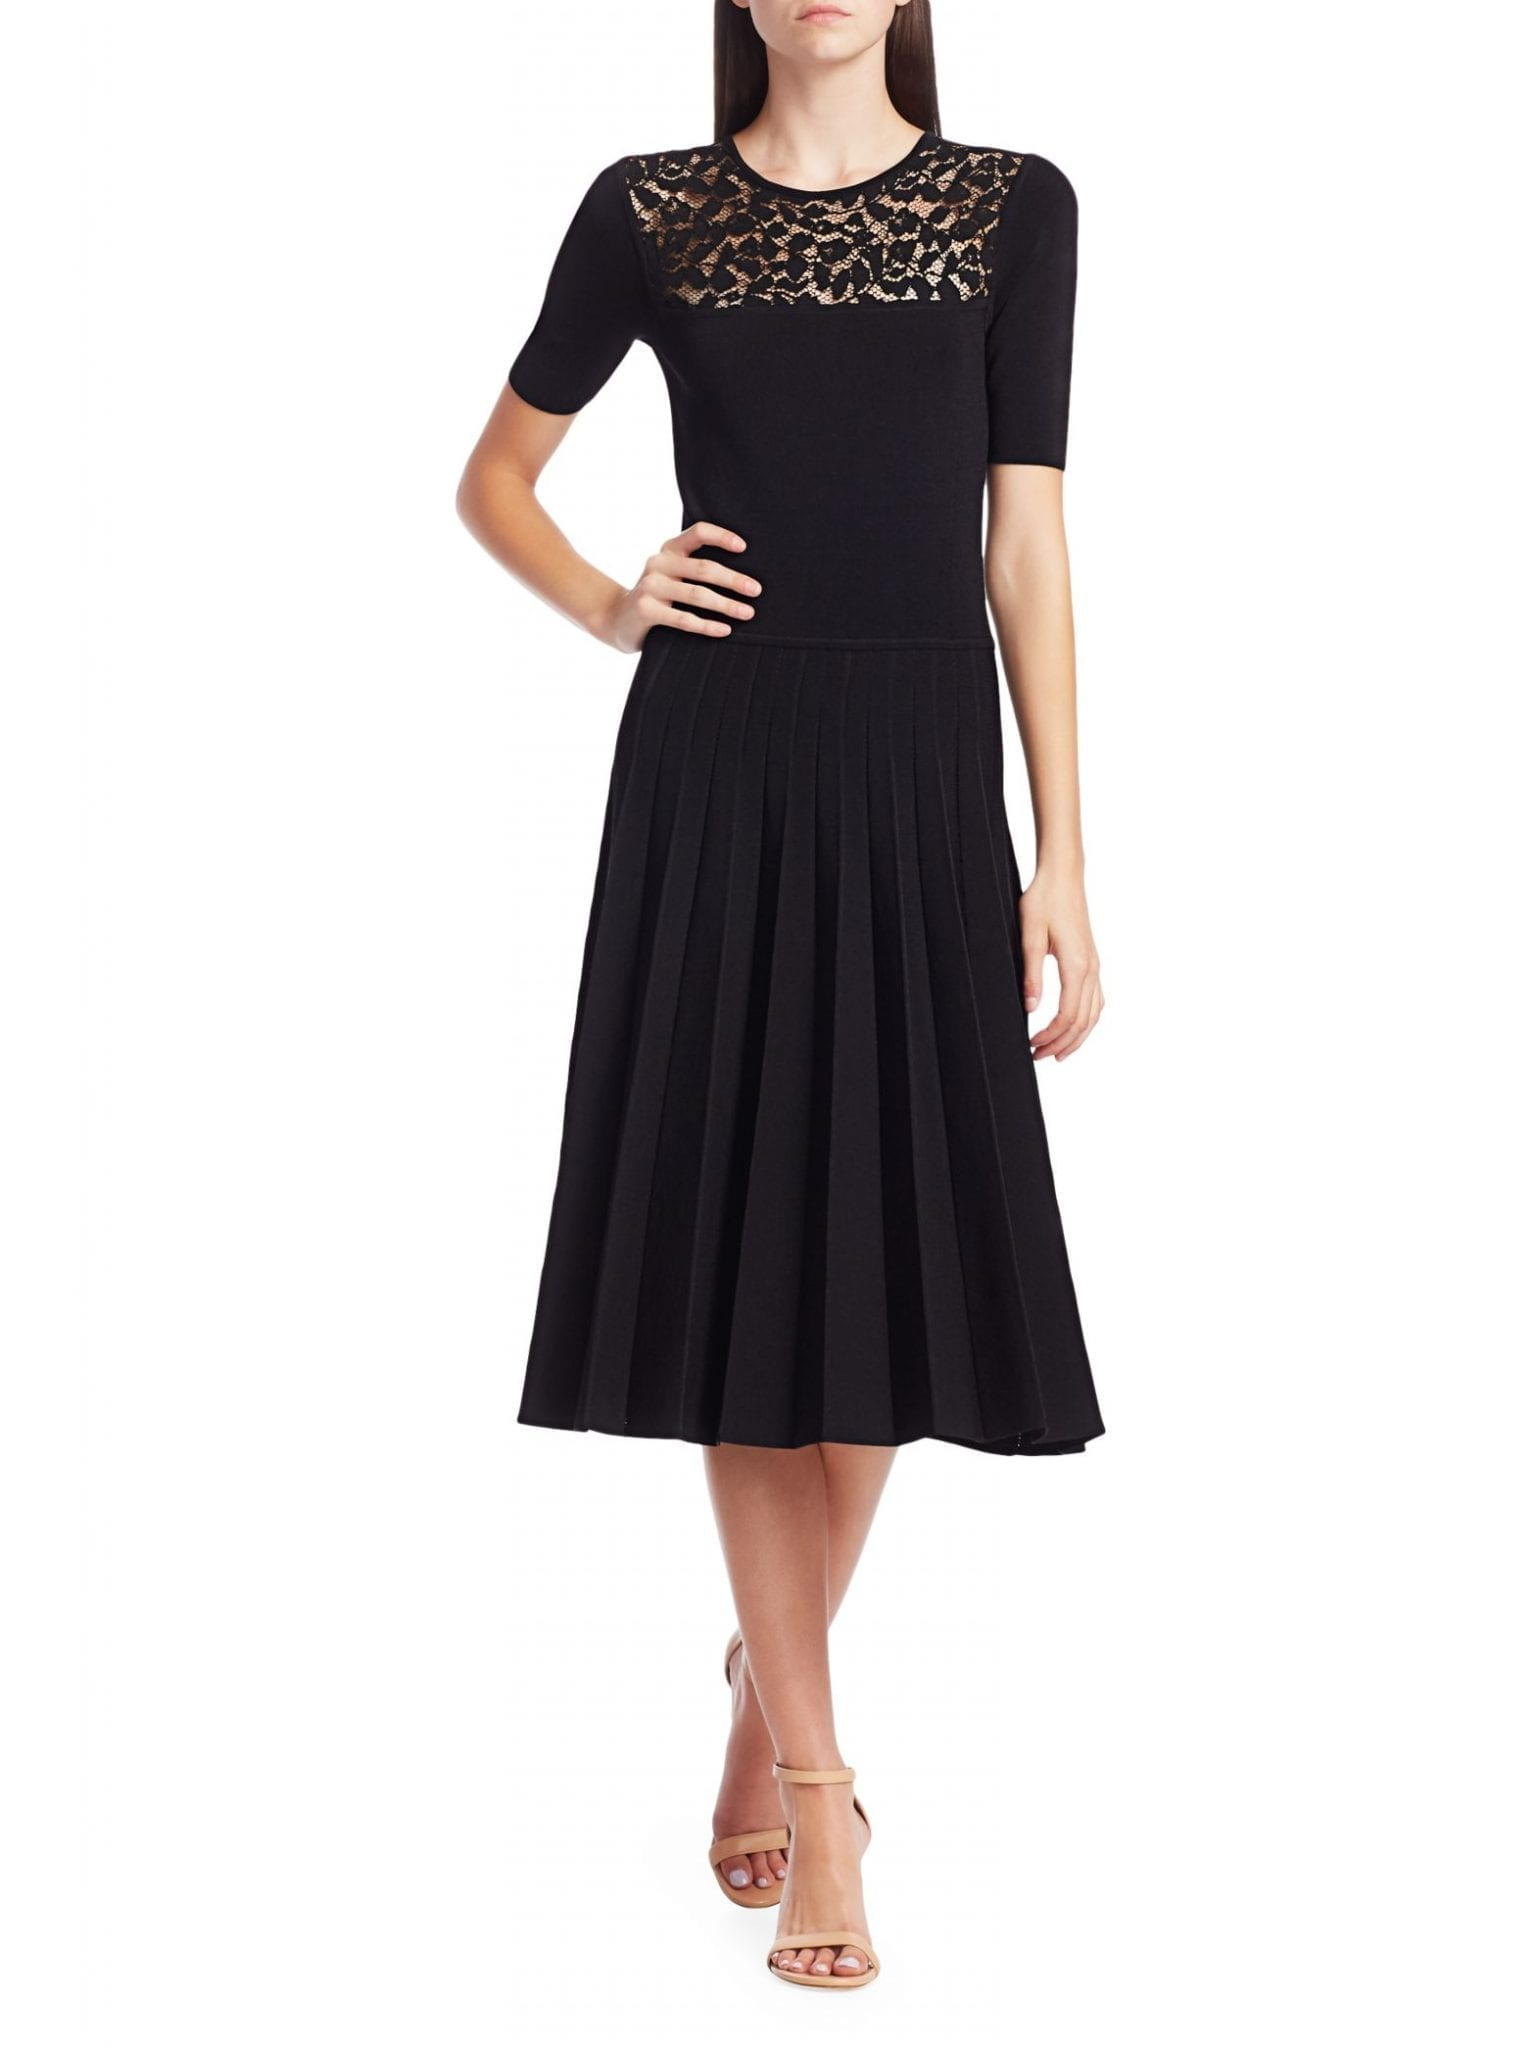 JASON WU COLLECTION Lace-Trimmed Knit Midi Dress